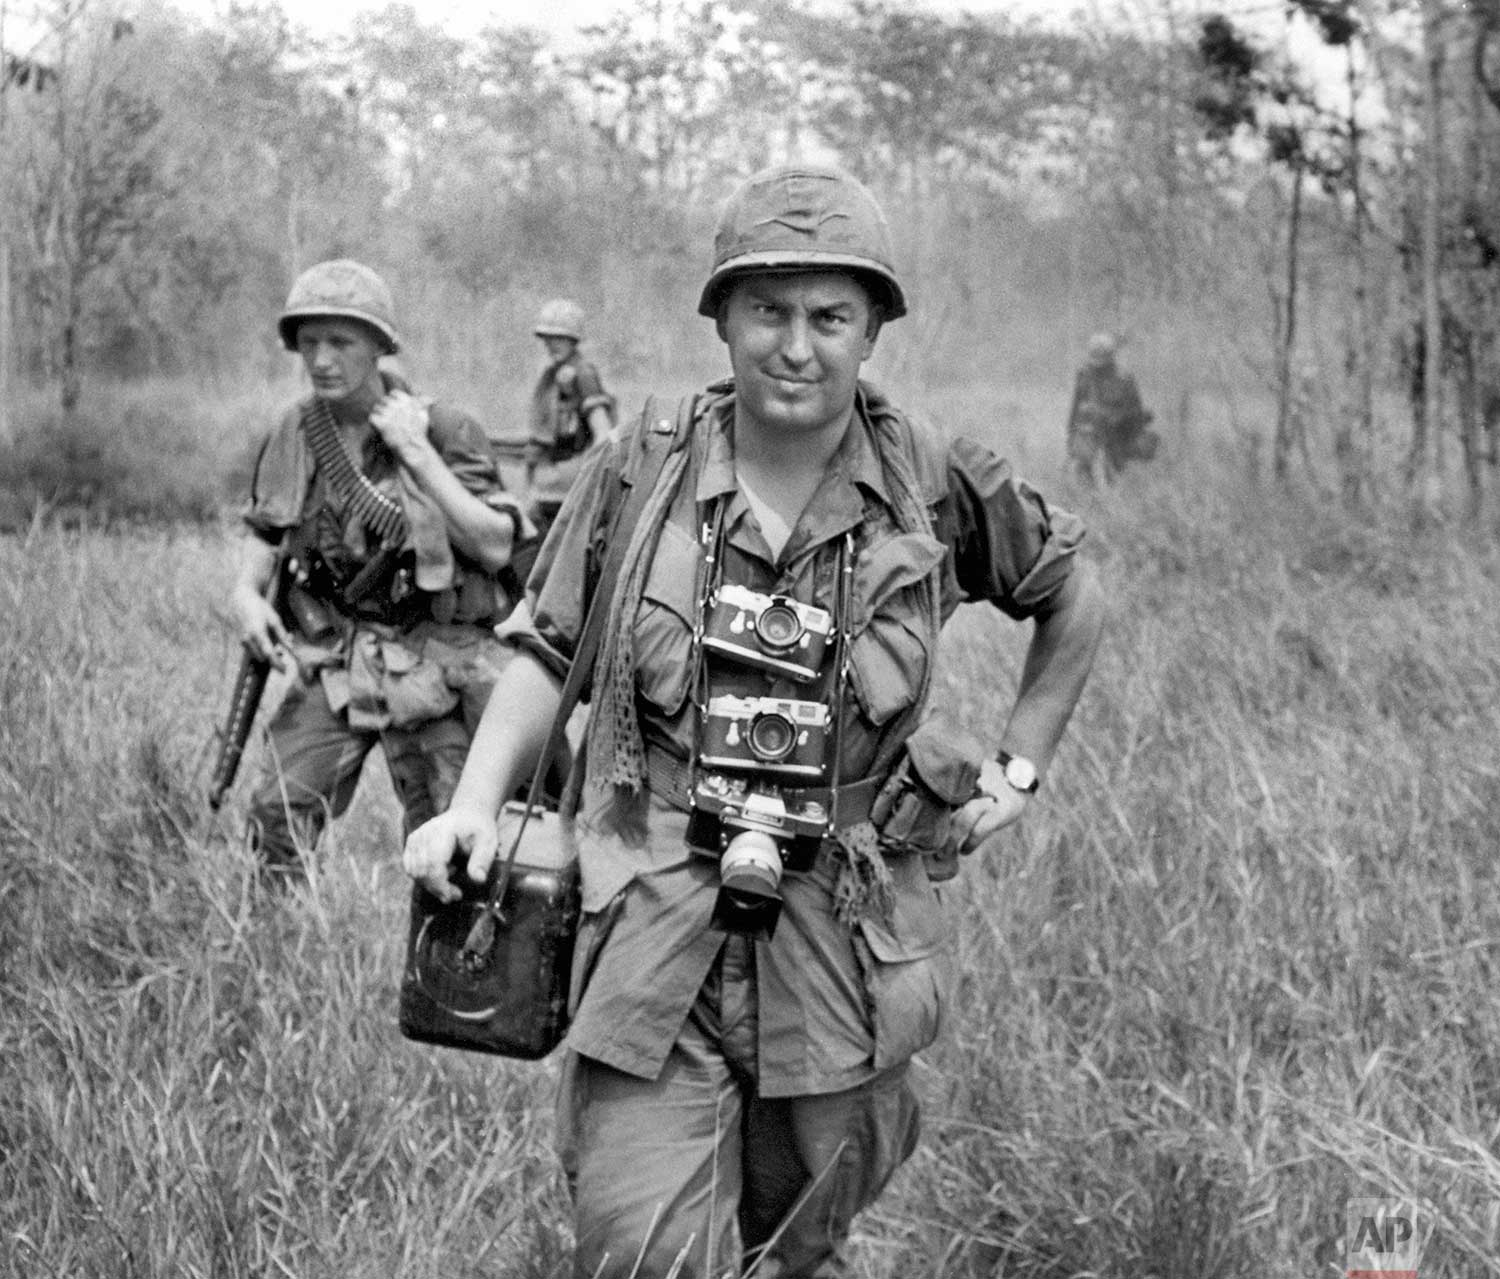 Associated Press photographer Horst Faas, with his Leica cameras around his neck, accompanies U.S. troops in War Zone C in Vietnam, 1967. (AP Photo/Courtesy of Horst Faas)